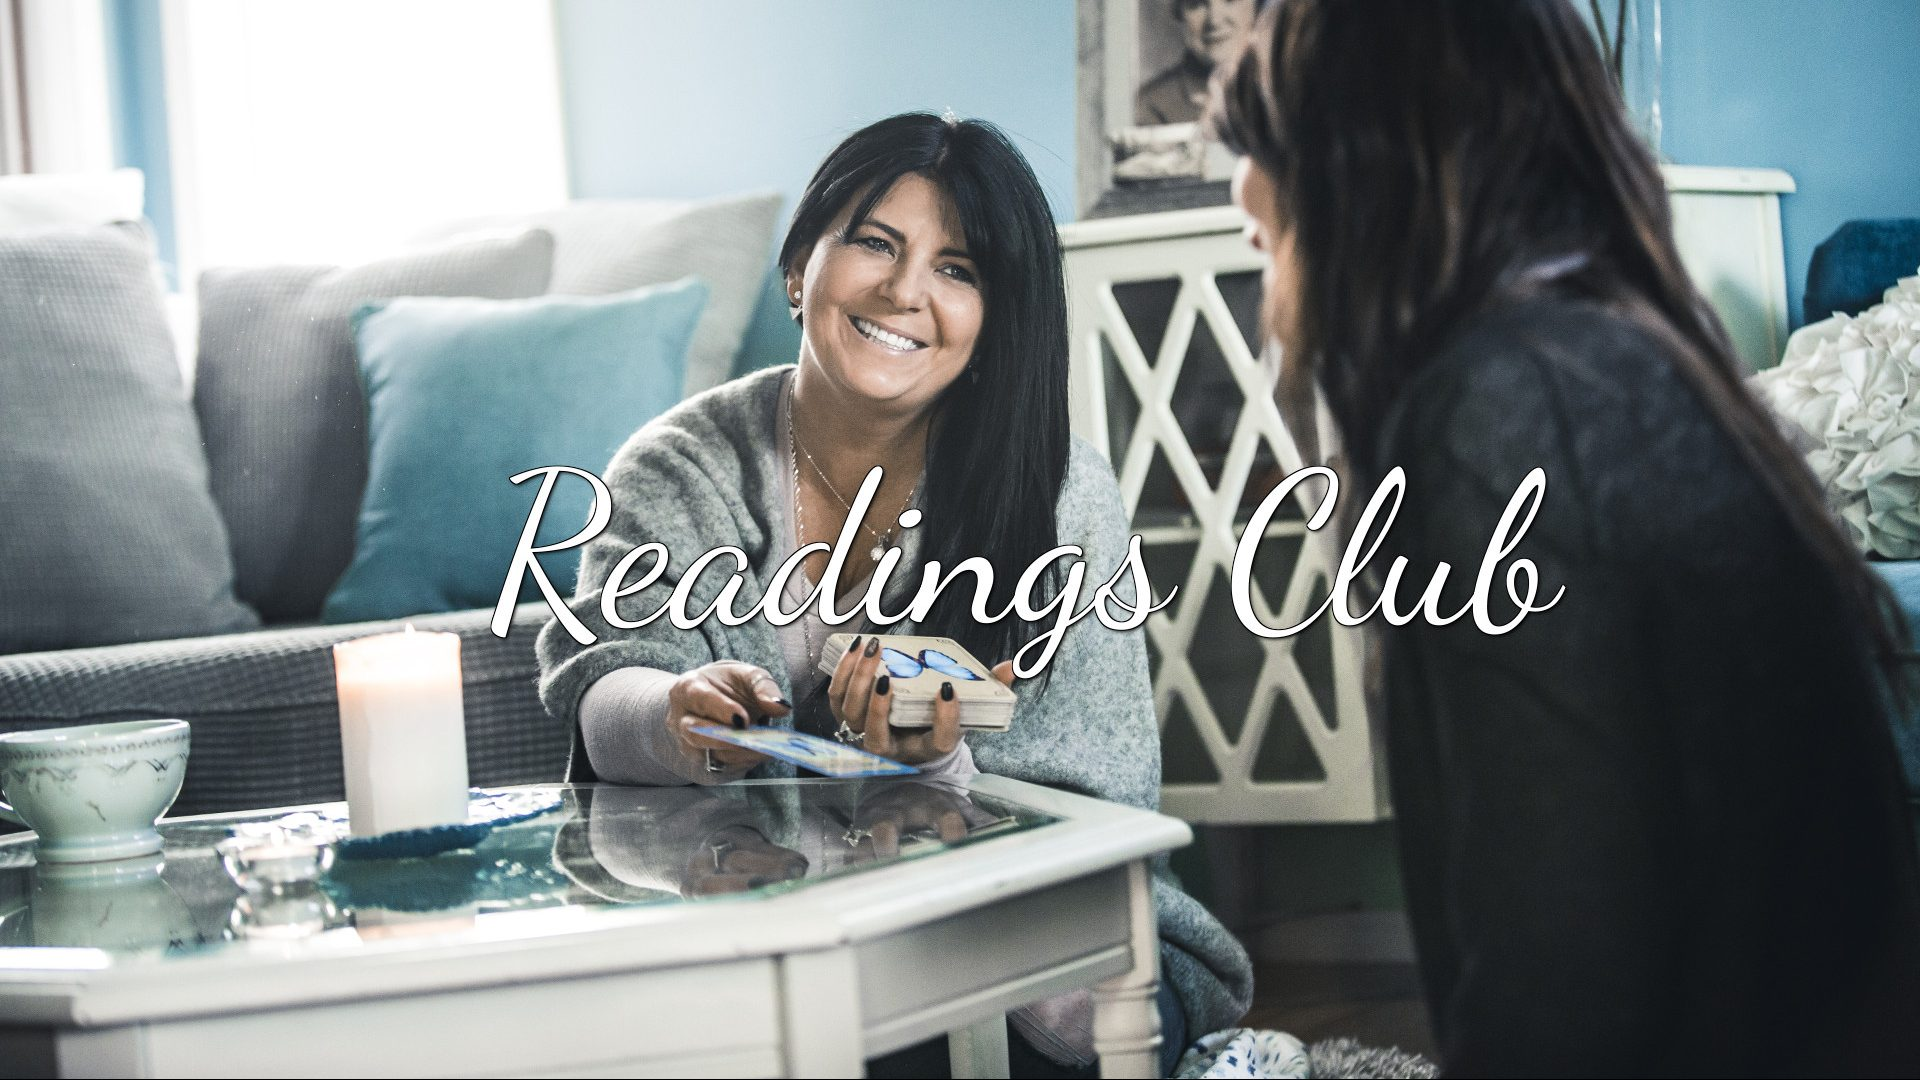 <b>Readings Club</b>